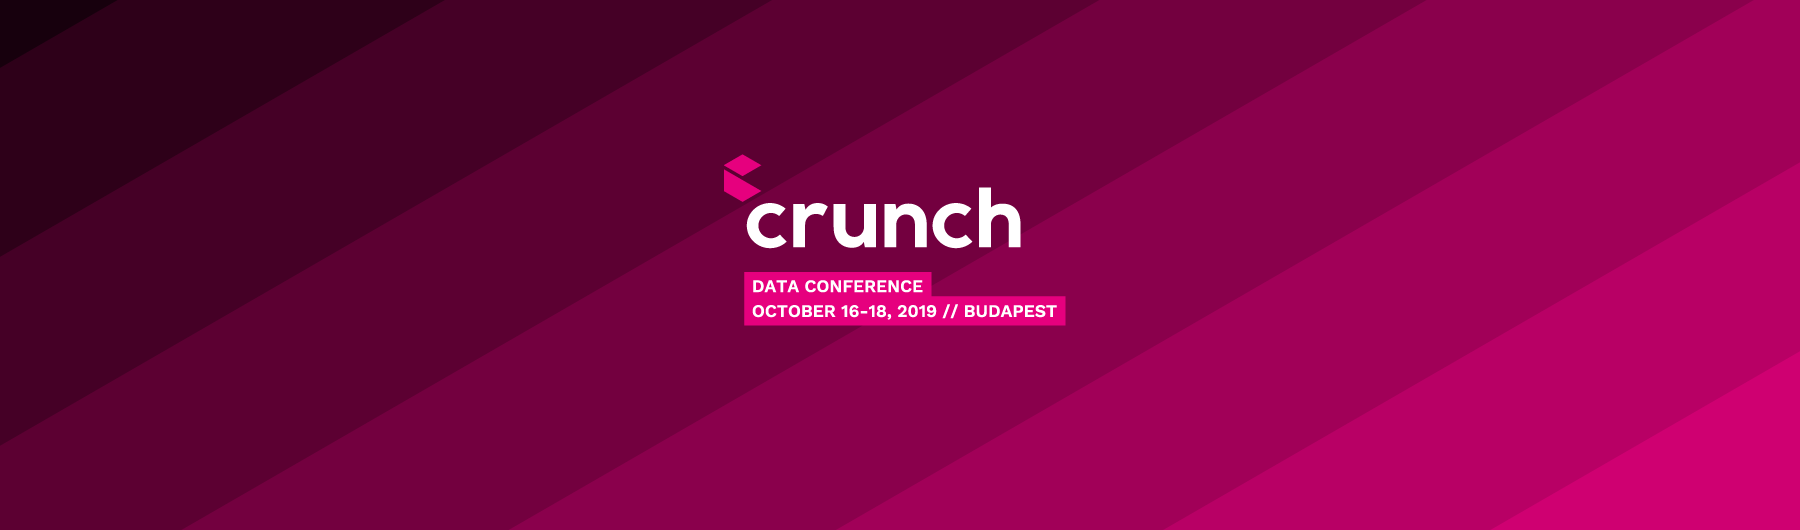 Crunch Conference 2019